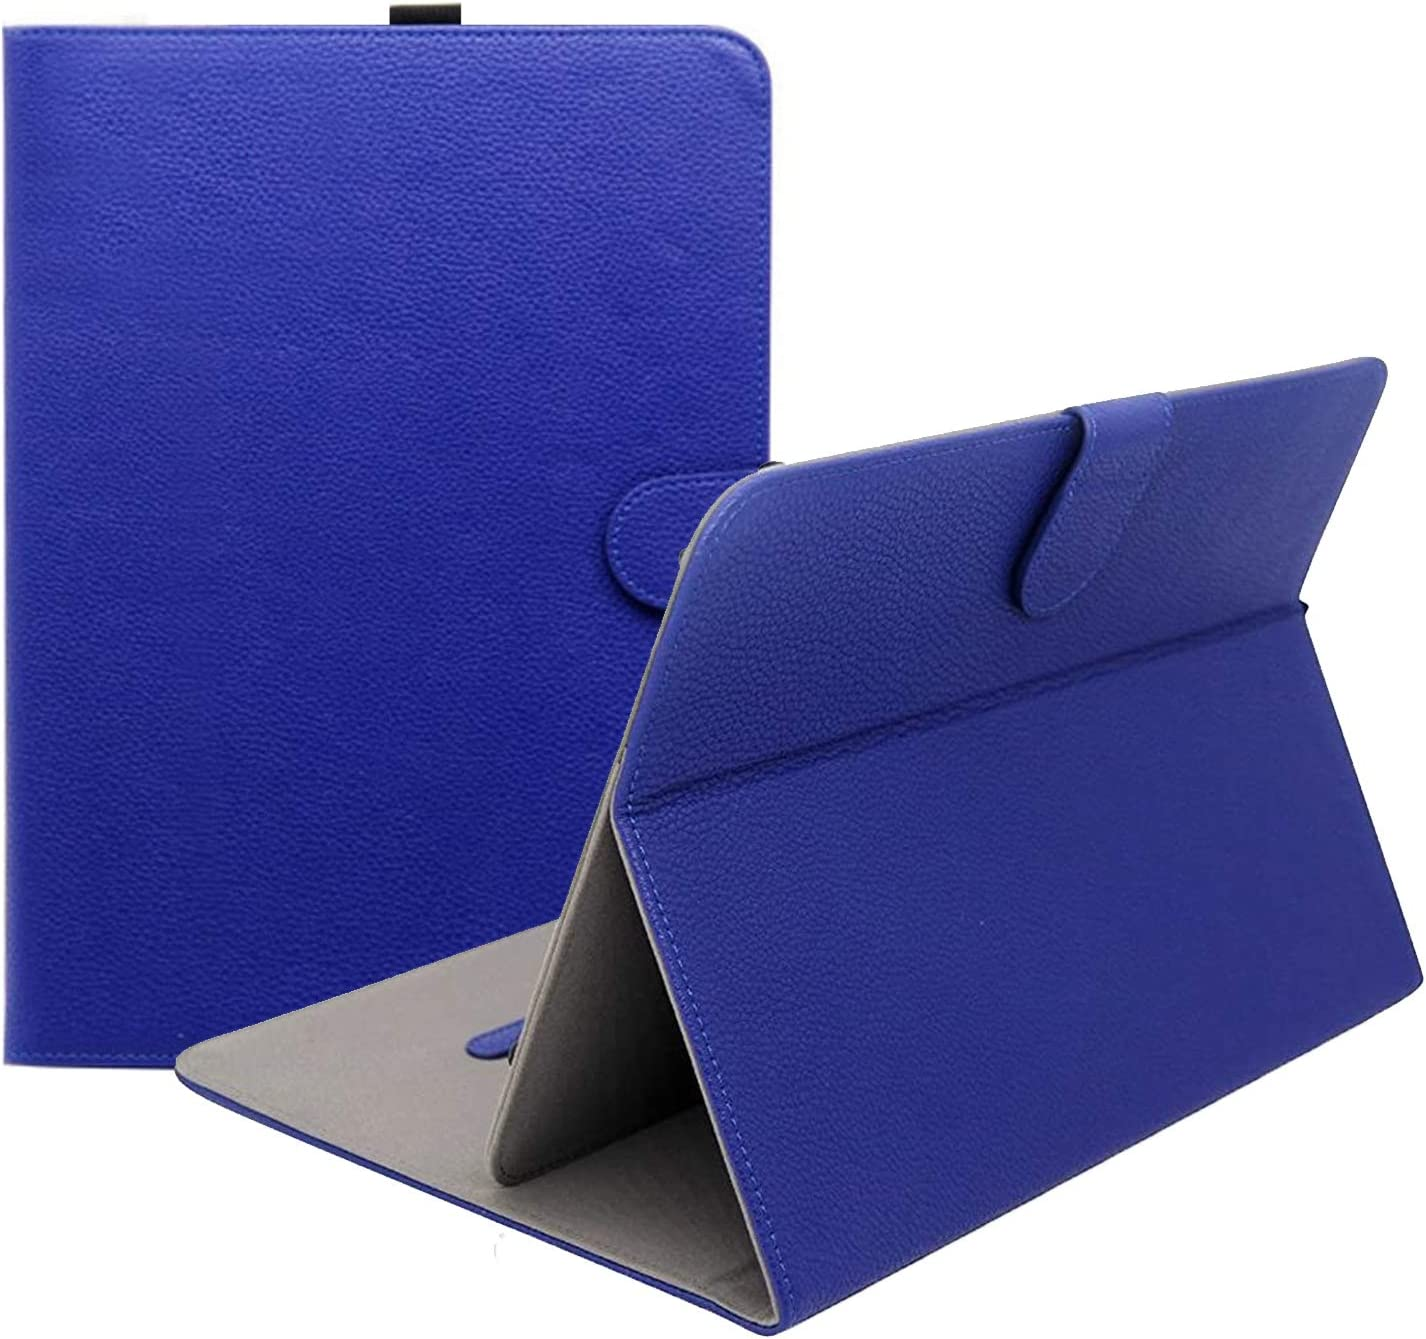 "ProCase Universal Folio Case for 9-10 inch Tablet, Leather Stand Protective Case Cover for 9"" 10.1"" Touchscreen Tablet with Multi-Angle Stand (Navy Blue)"